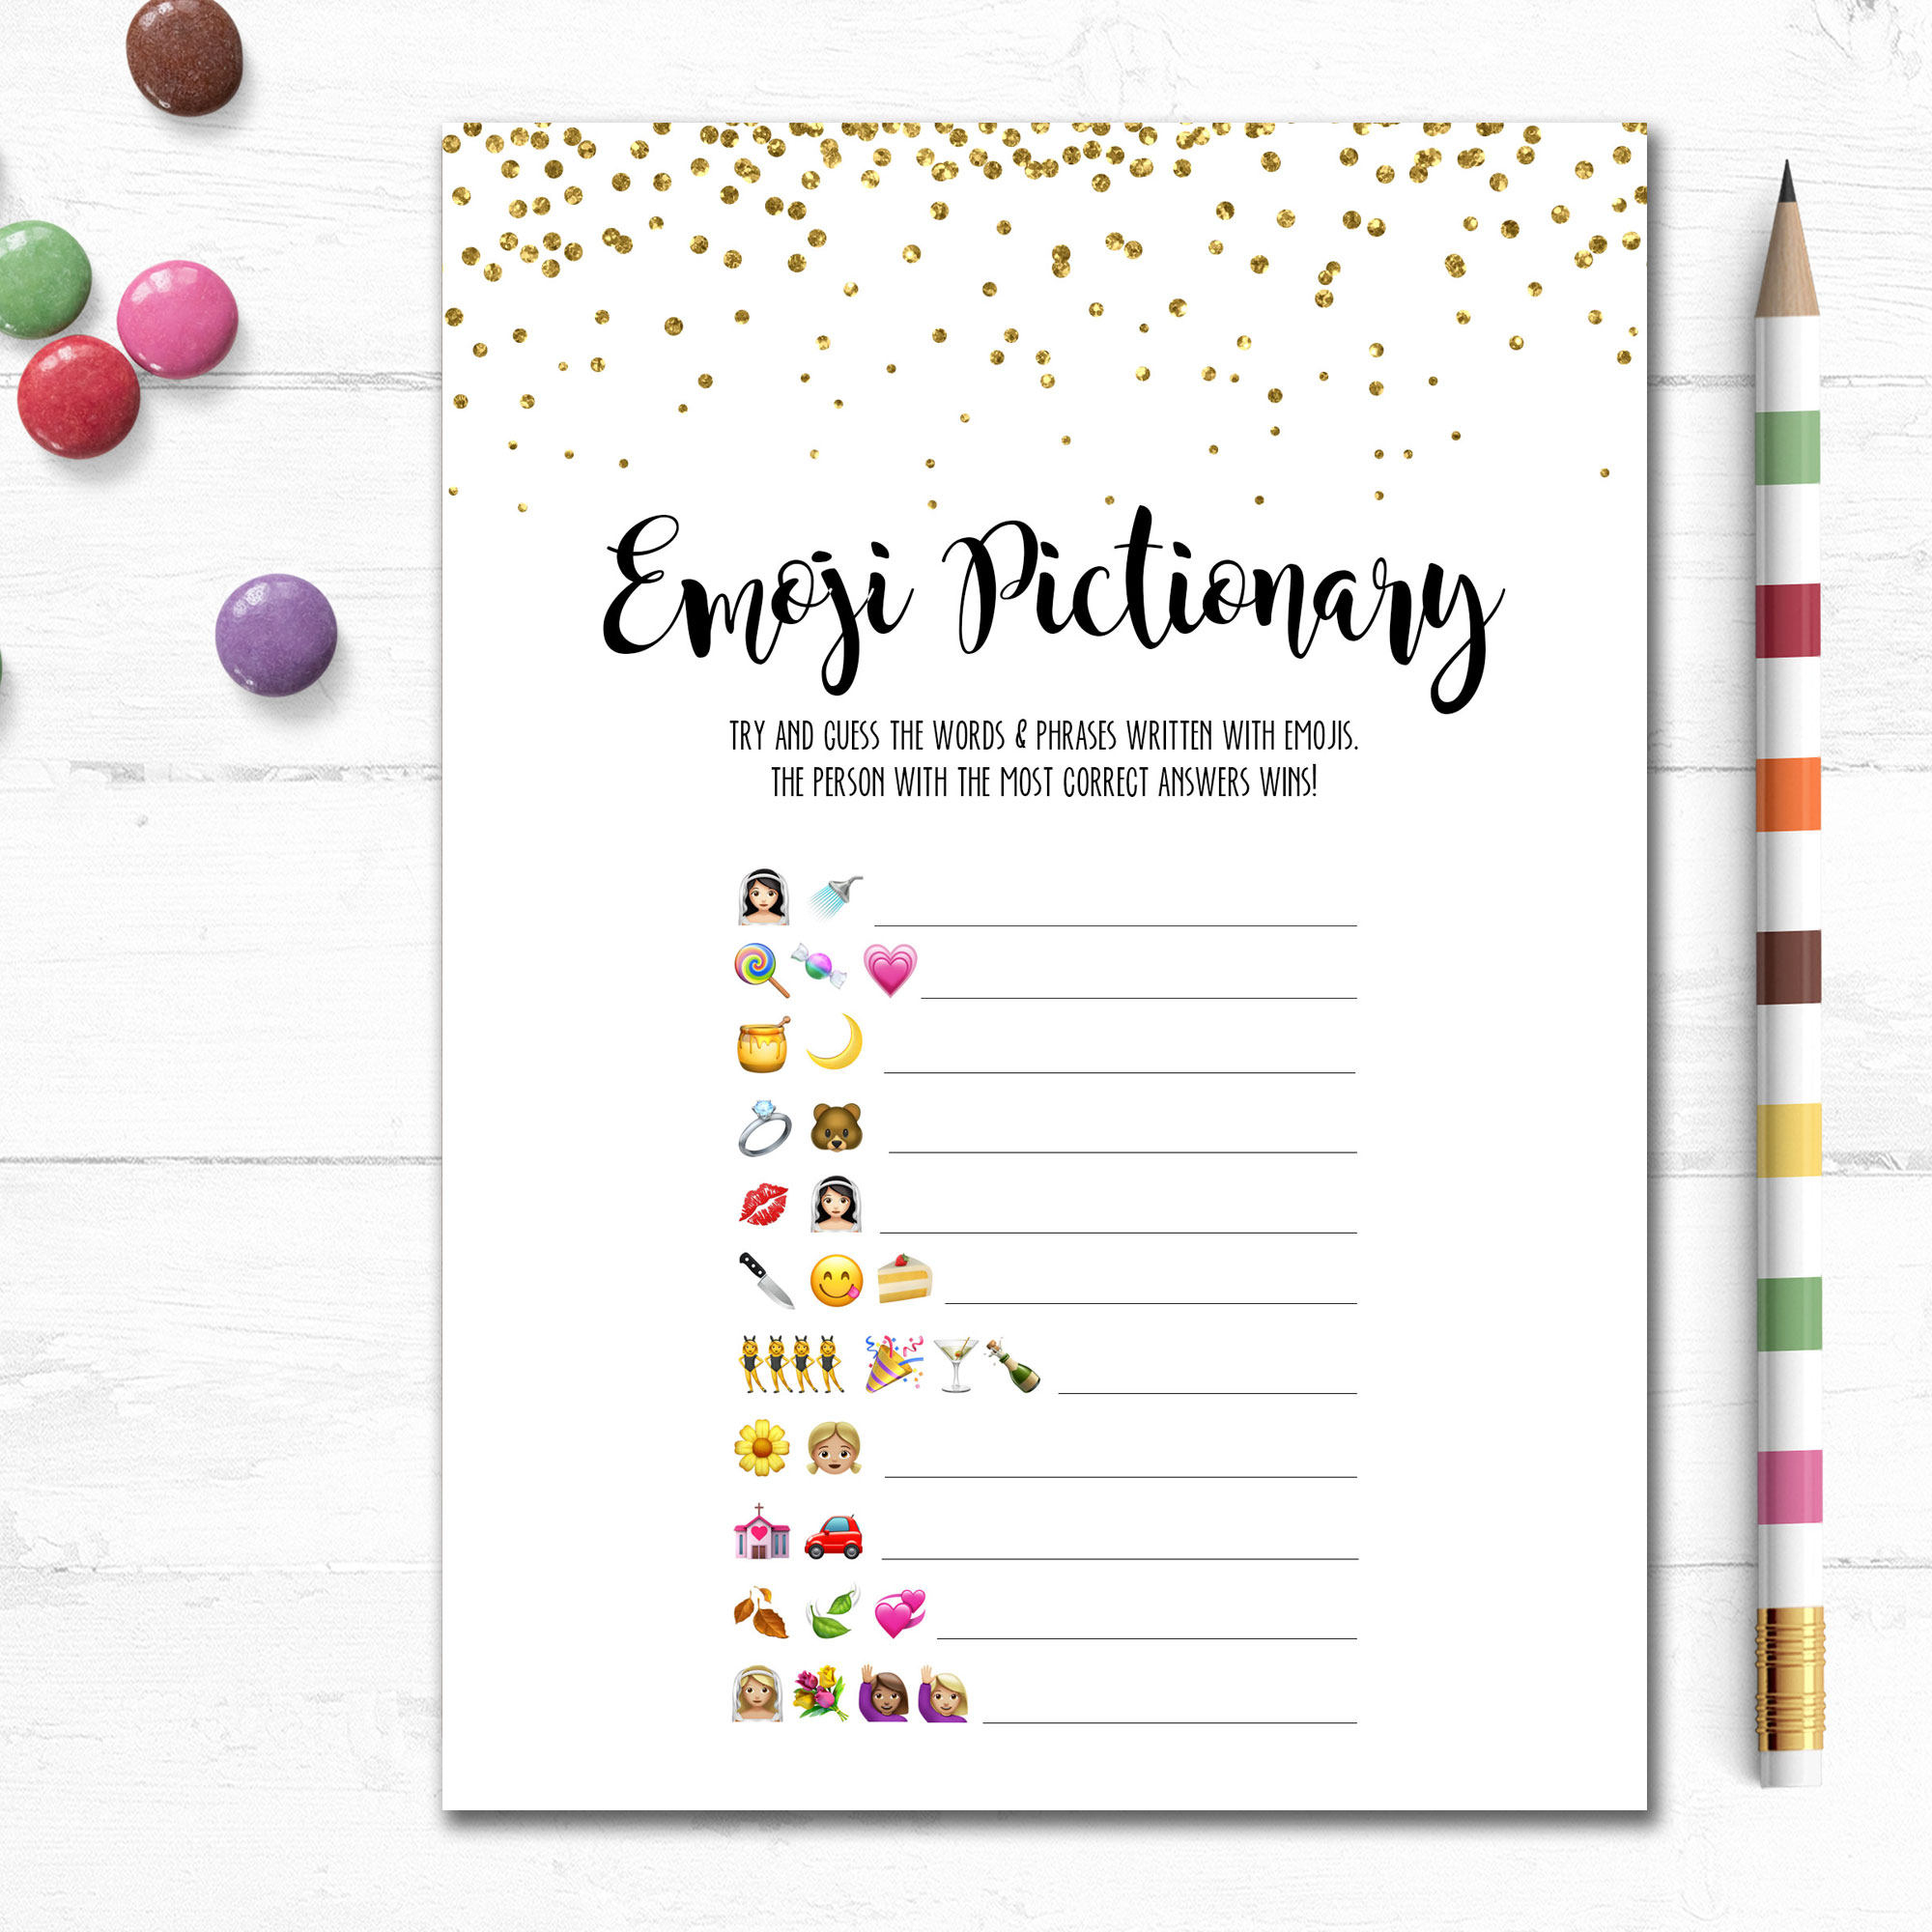 Printable Wedding Emoji Pictionary Bridal Shower Game Bridal | Etsy - Wedding Emoji Pictionary Free Printable